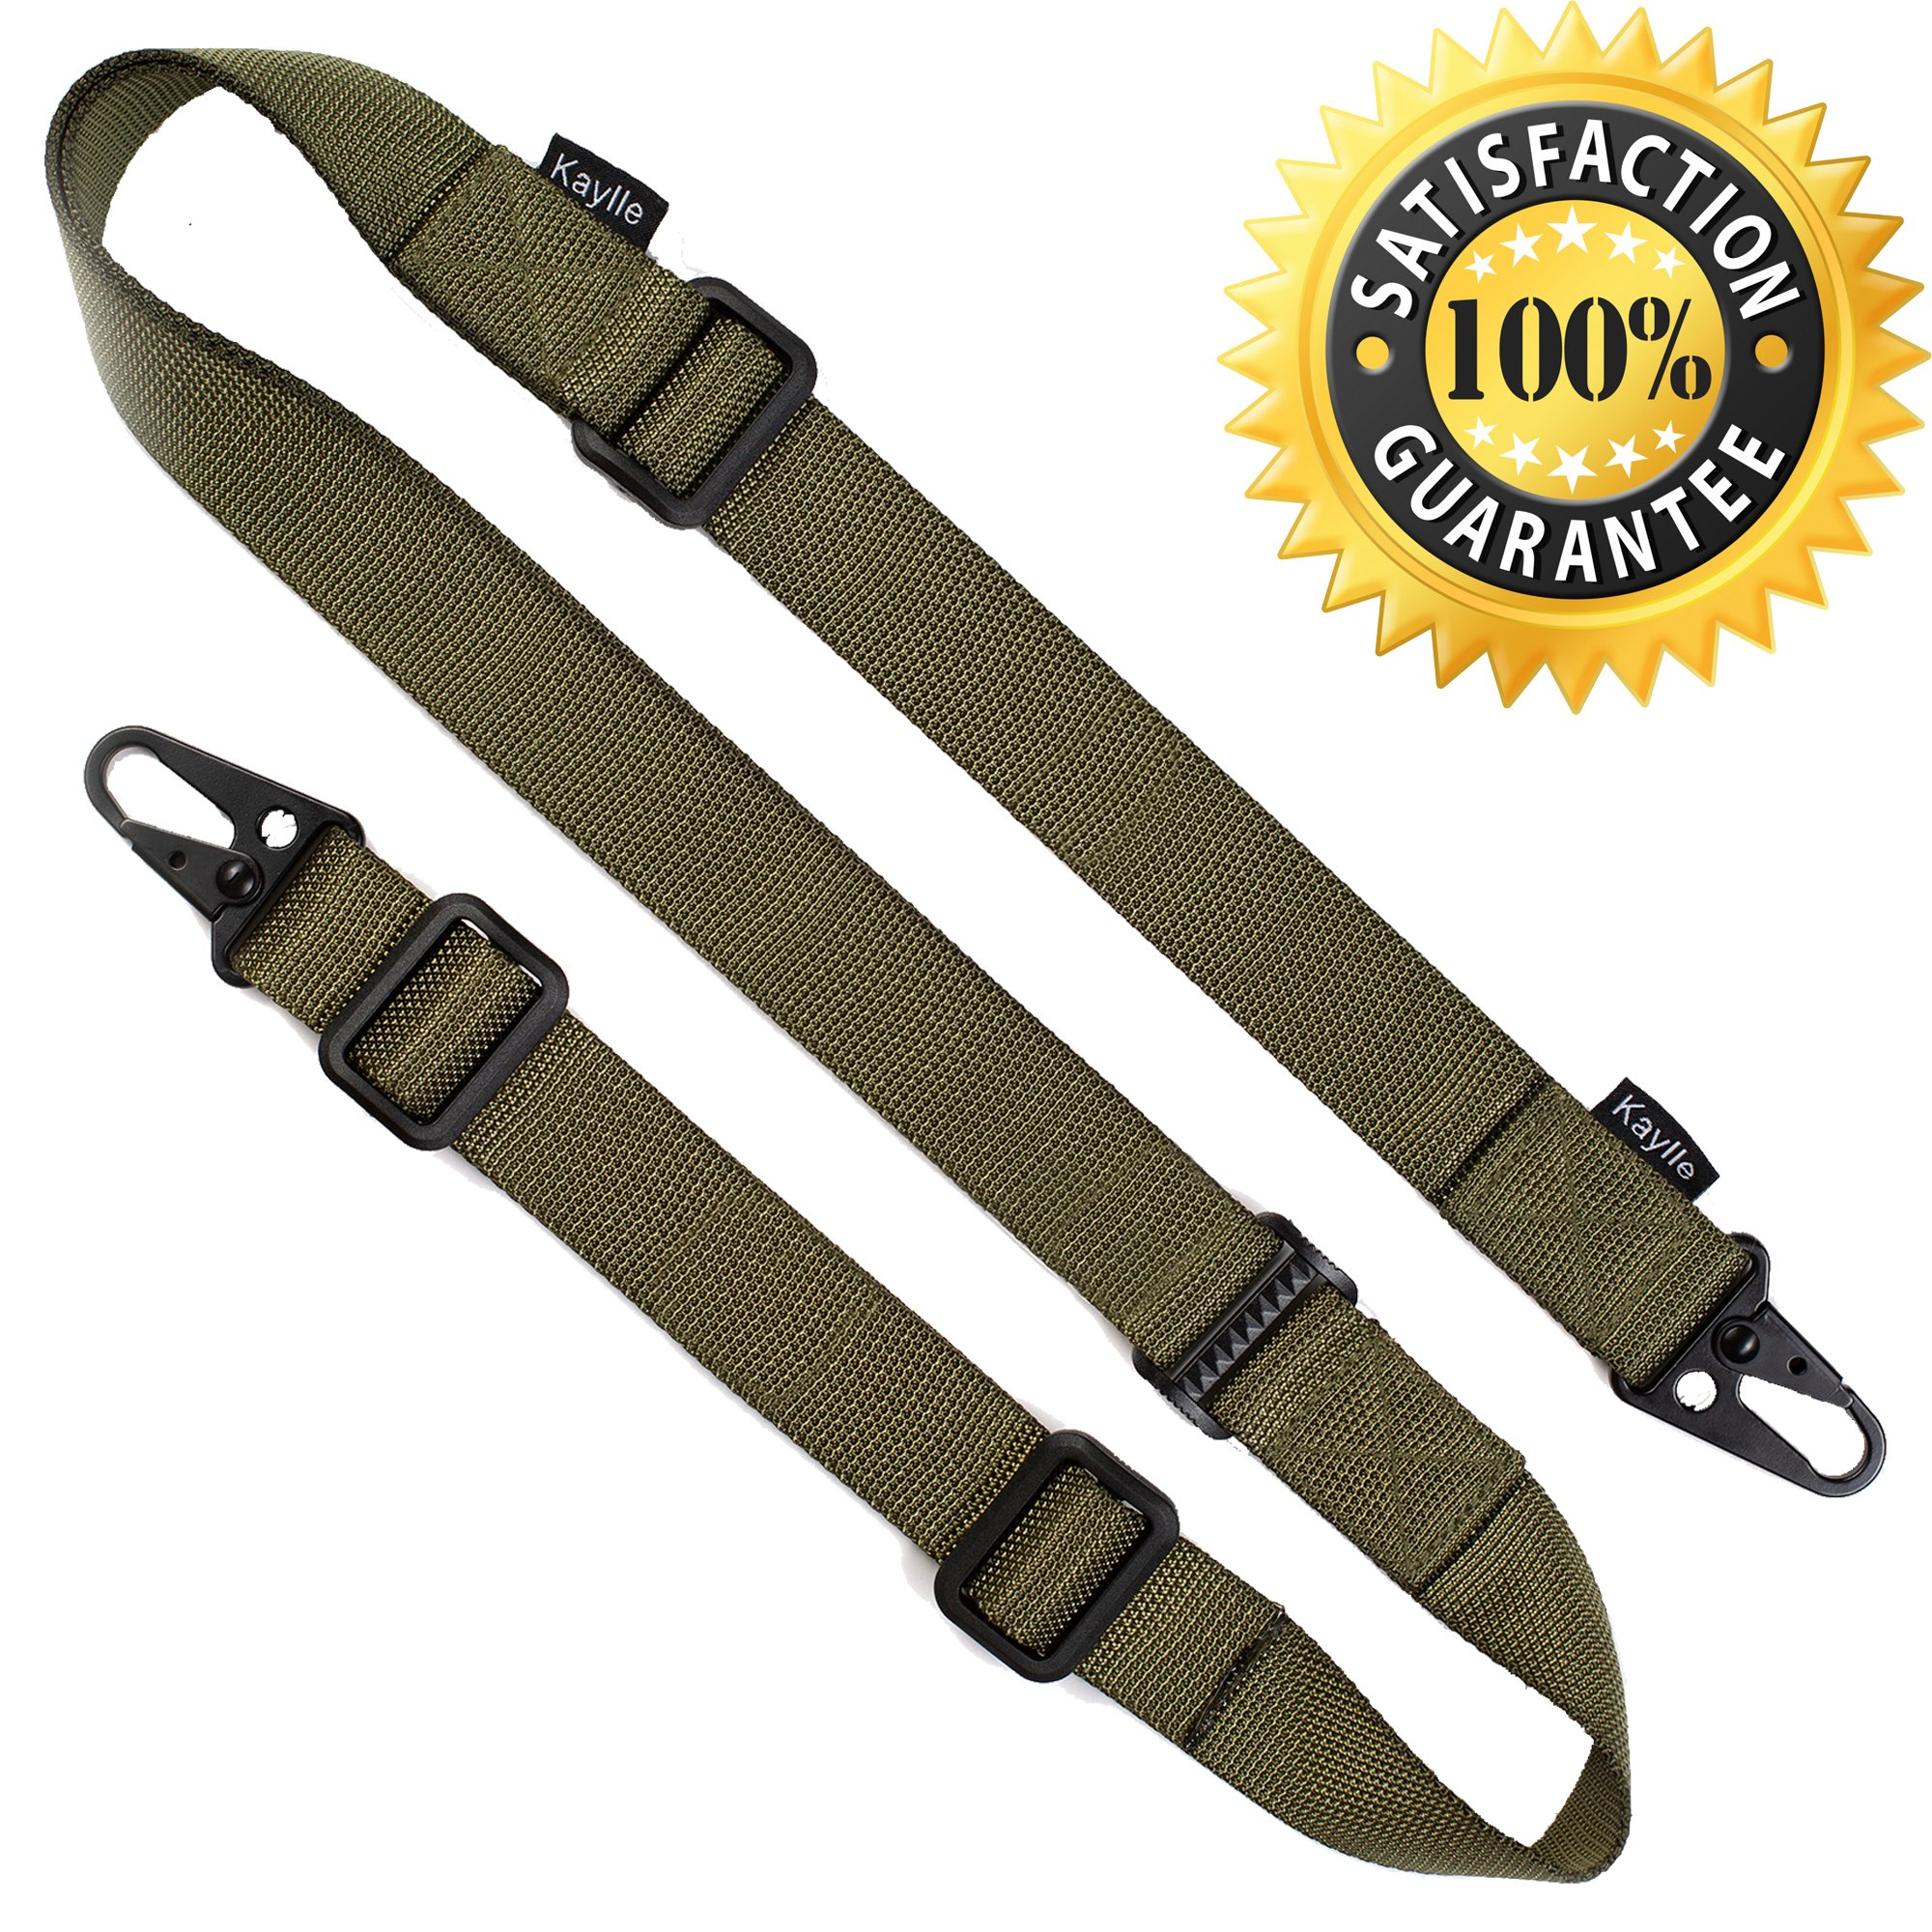 KAYLLE 2-Point Rifle Sling - Premium Shotgun Sling with Upgraded Metal Hook Fits Any Weapon - Durable & Quick Length Adjust - Multi Use for Tactical, Hunting, Sniper, Shooting (ArmyGreen) by KAYLLE